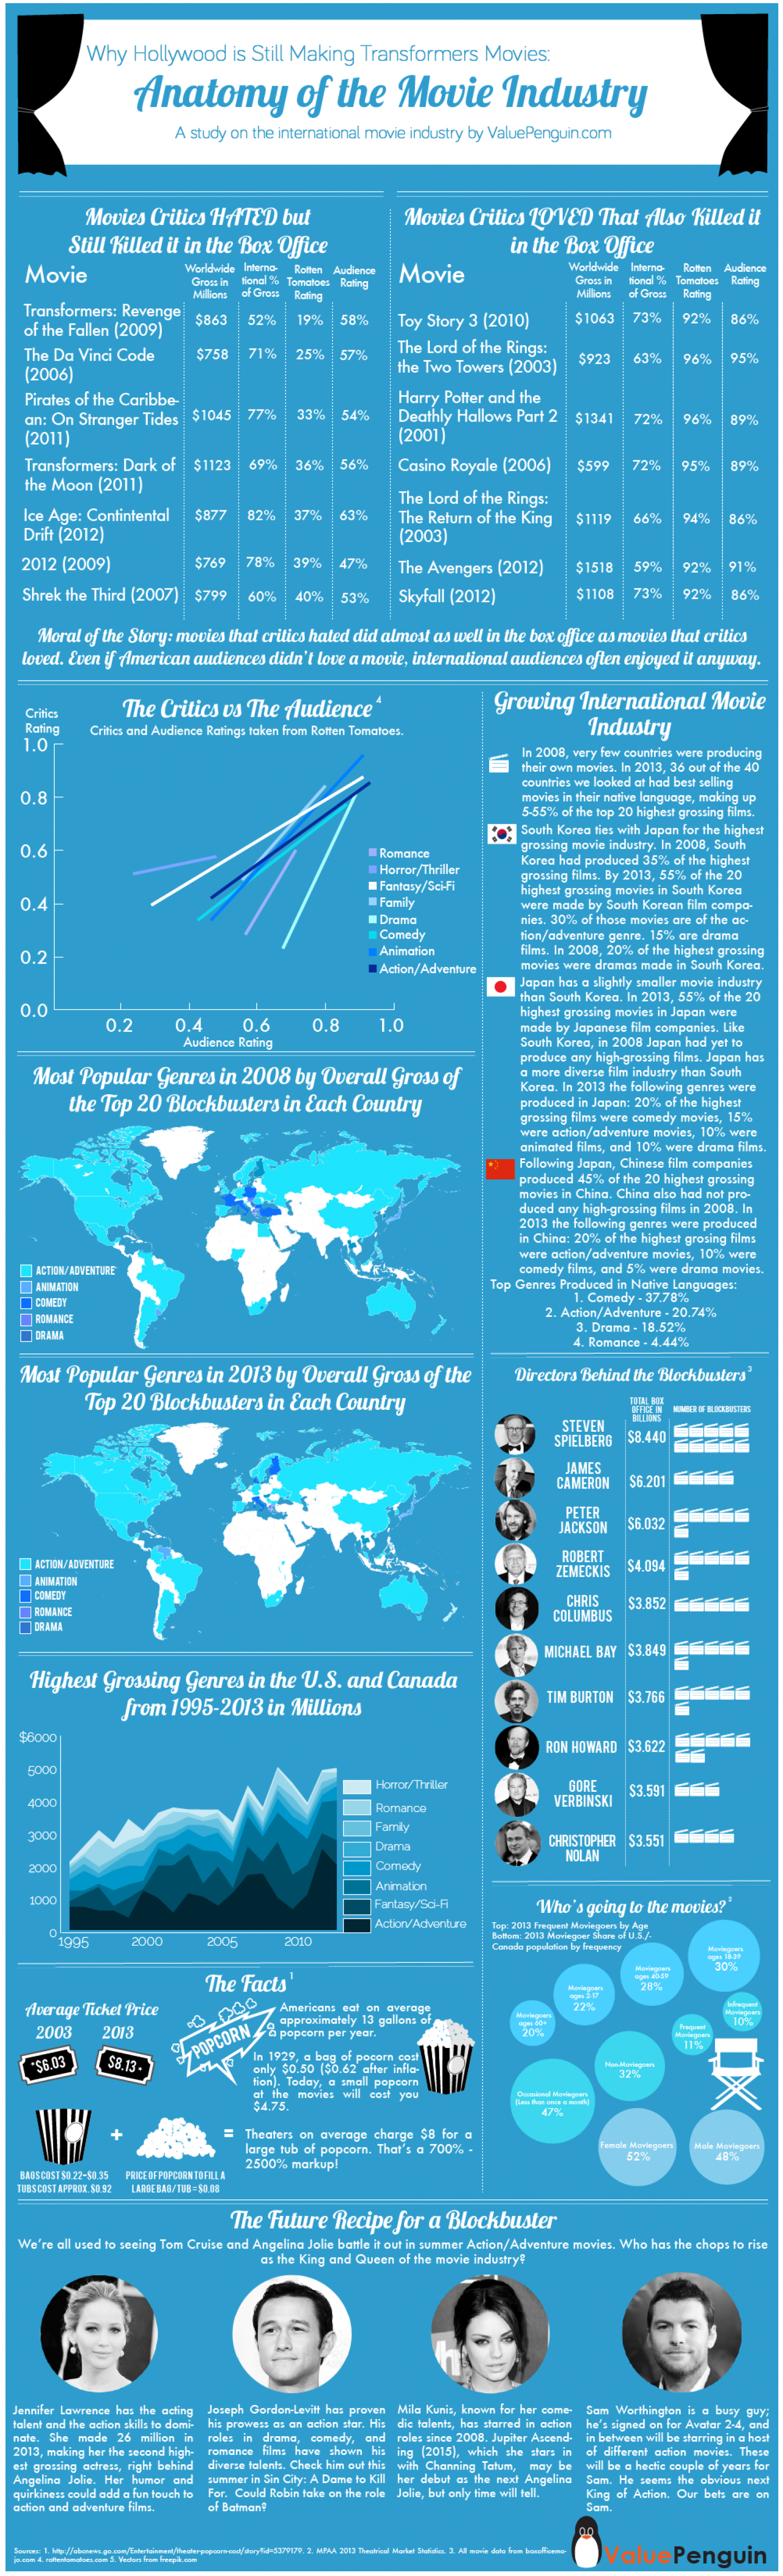 Why Hollywood is Still Making Transformers Movies Infographic